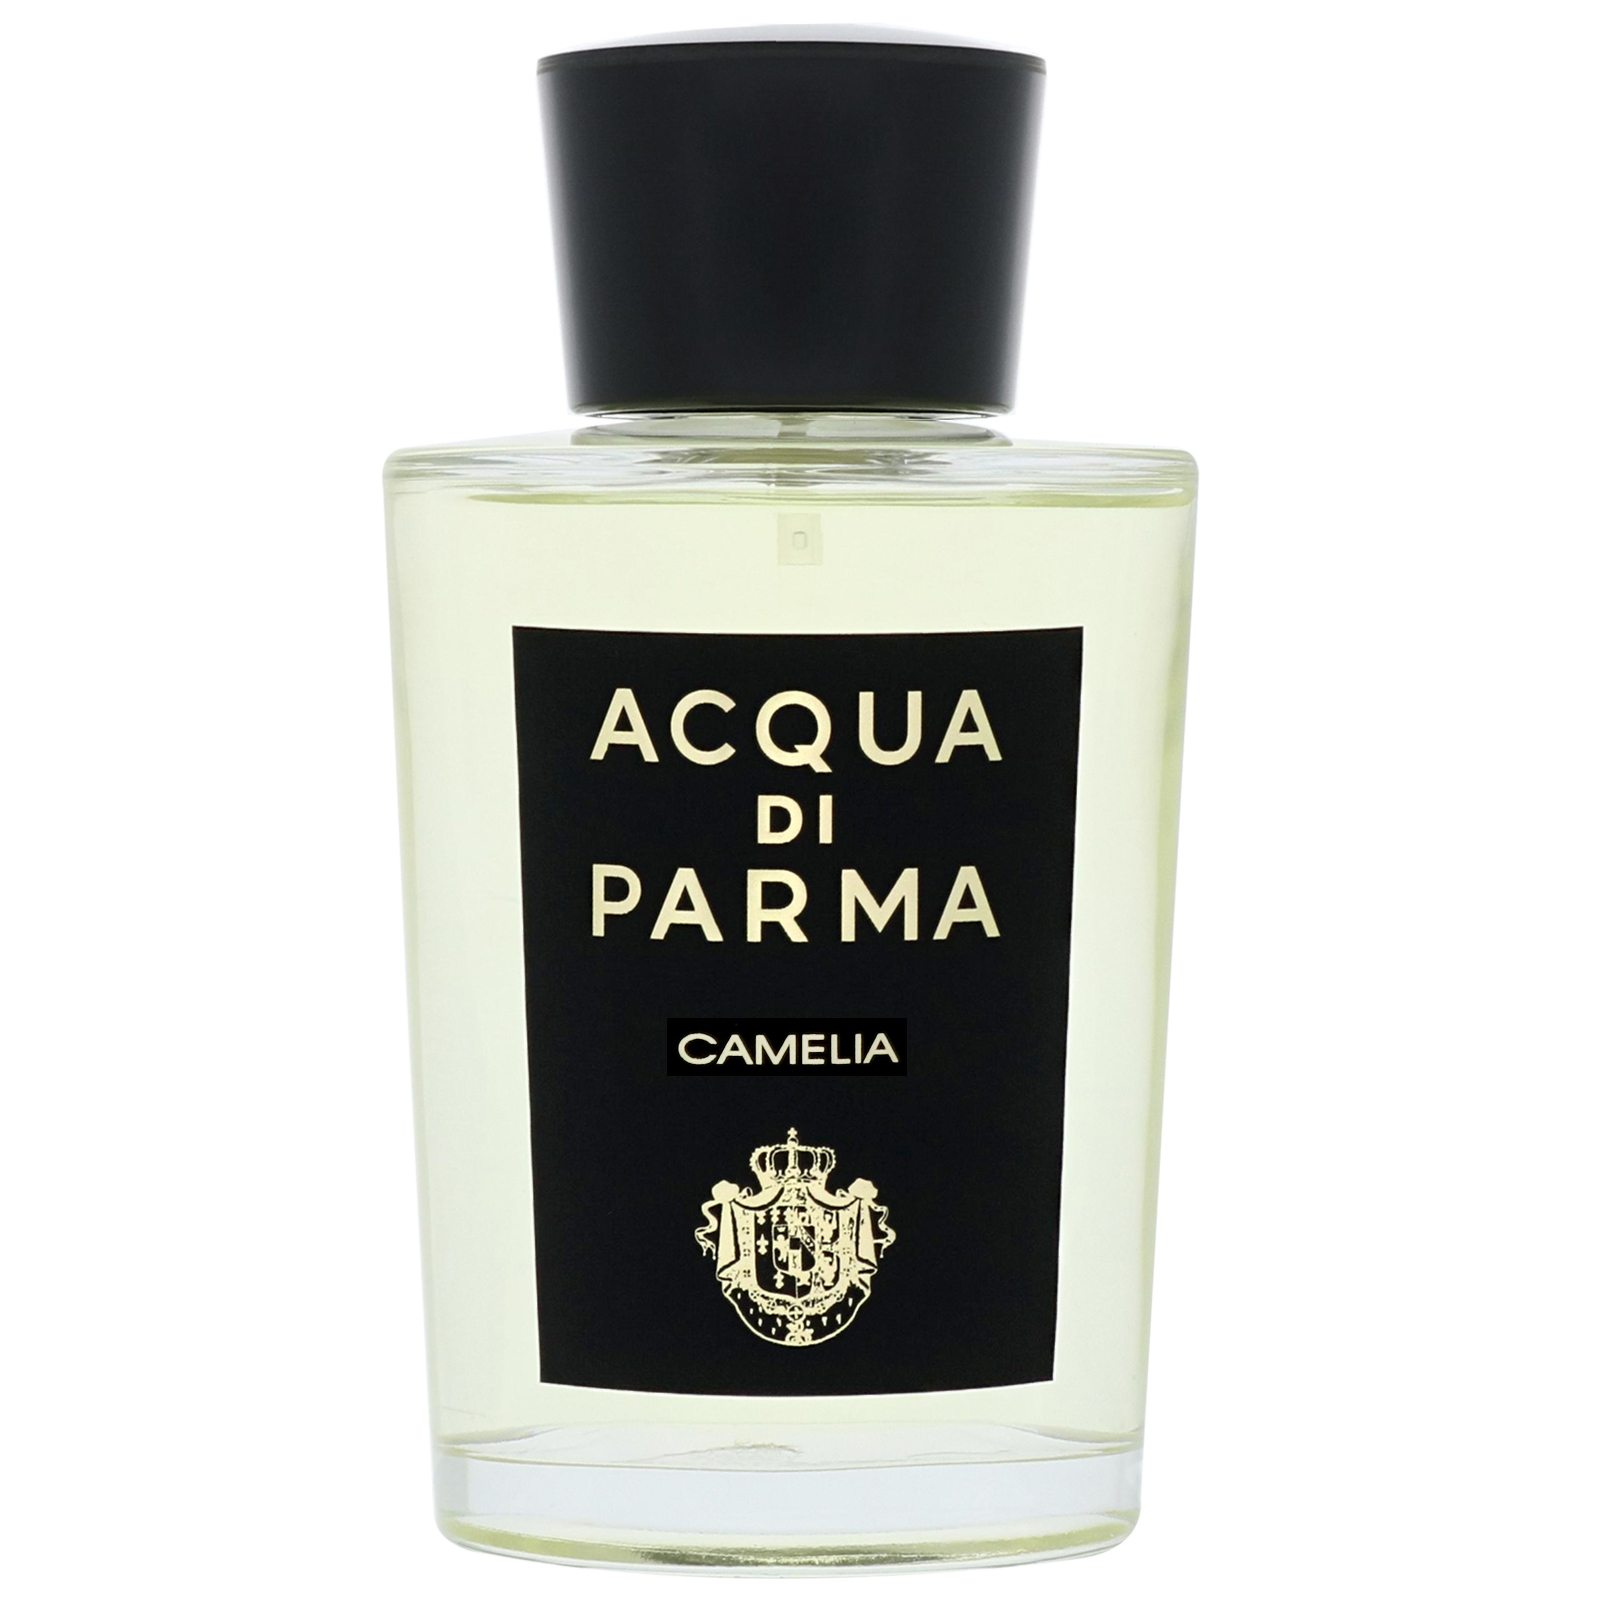 Acqua Di Parma Camelia Eau de Parfum Spray 180ml